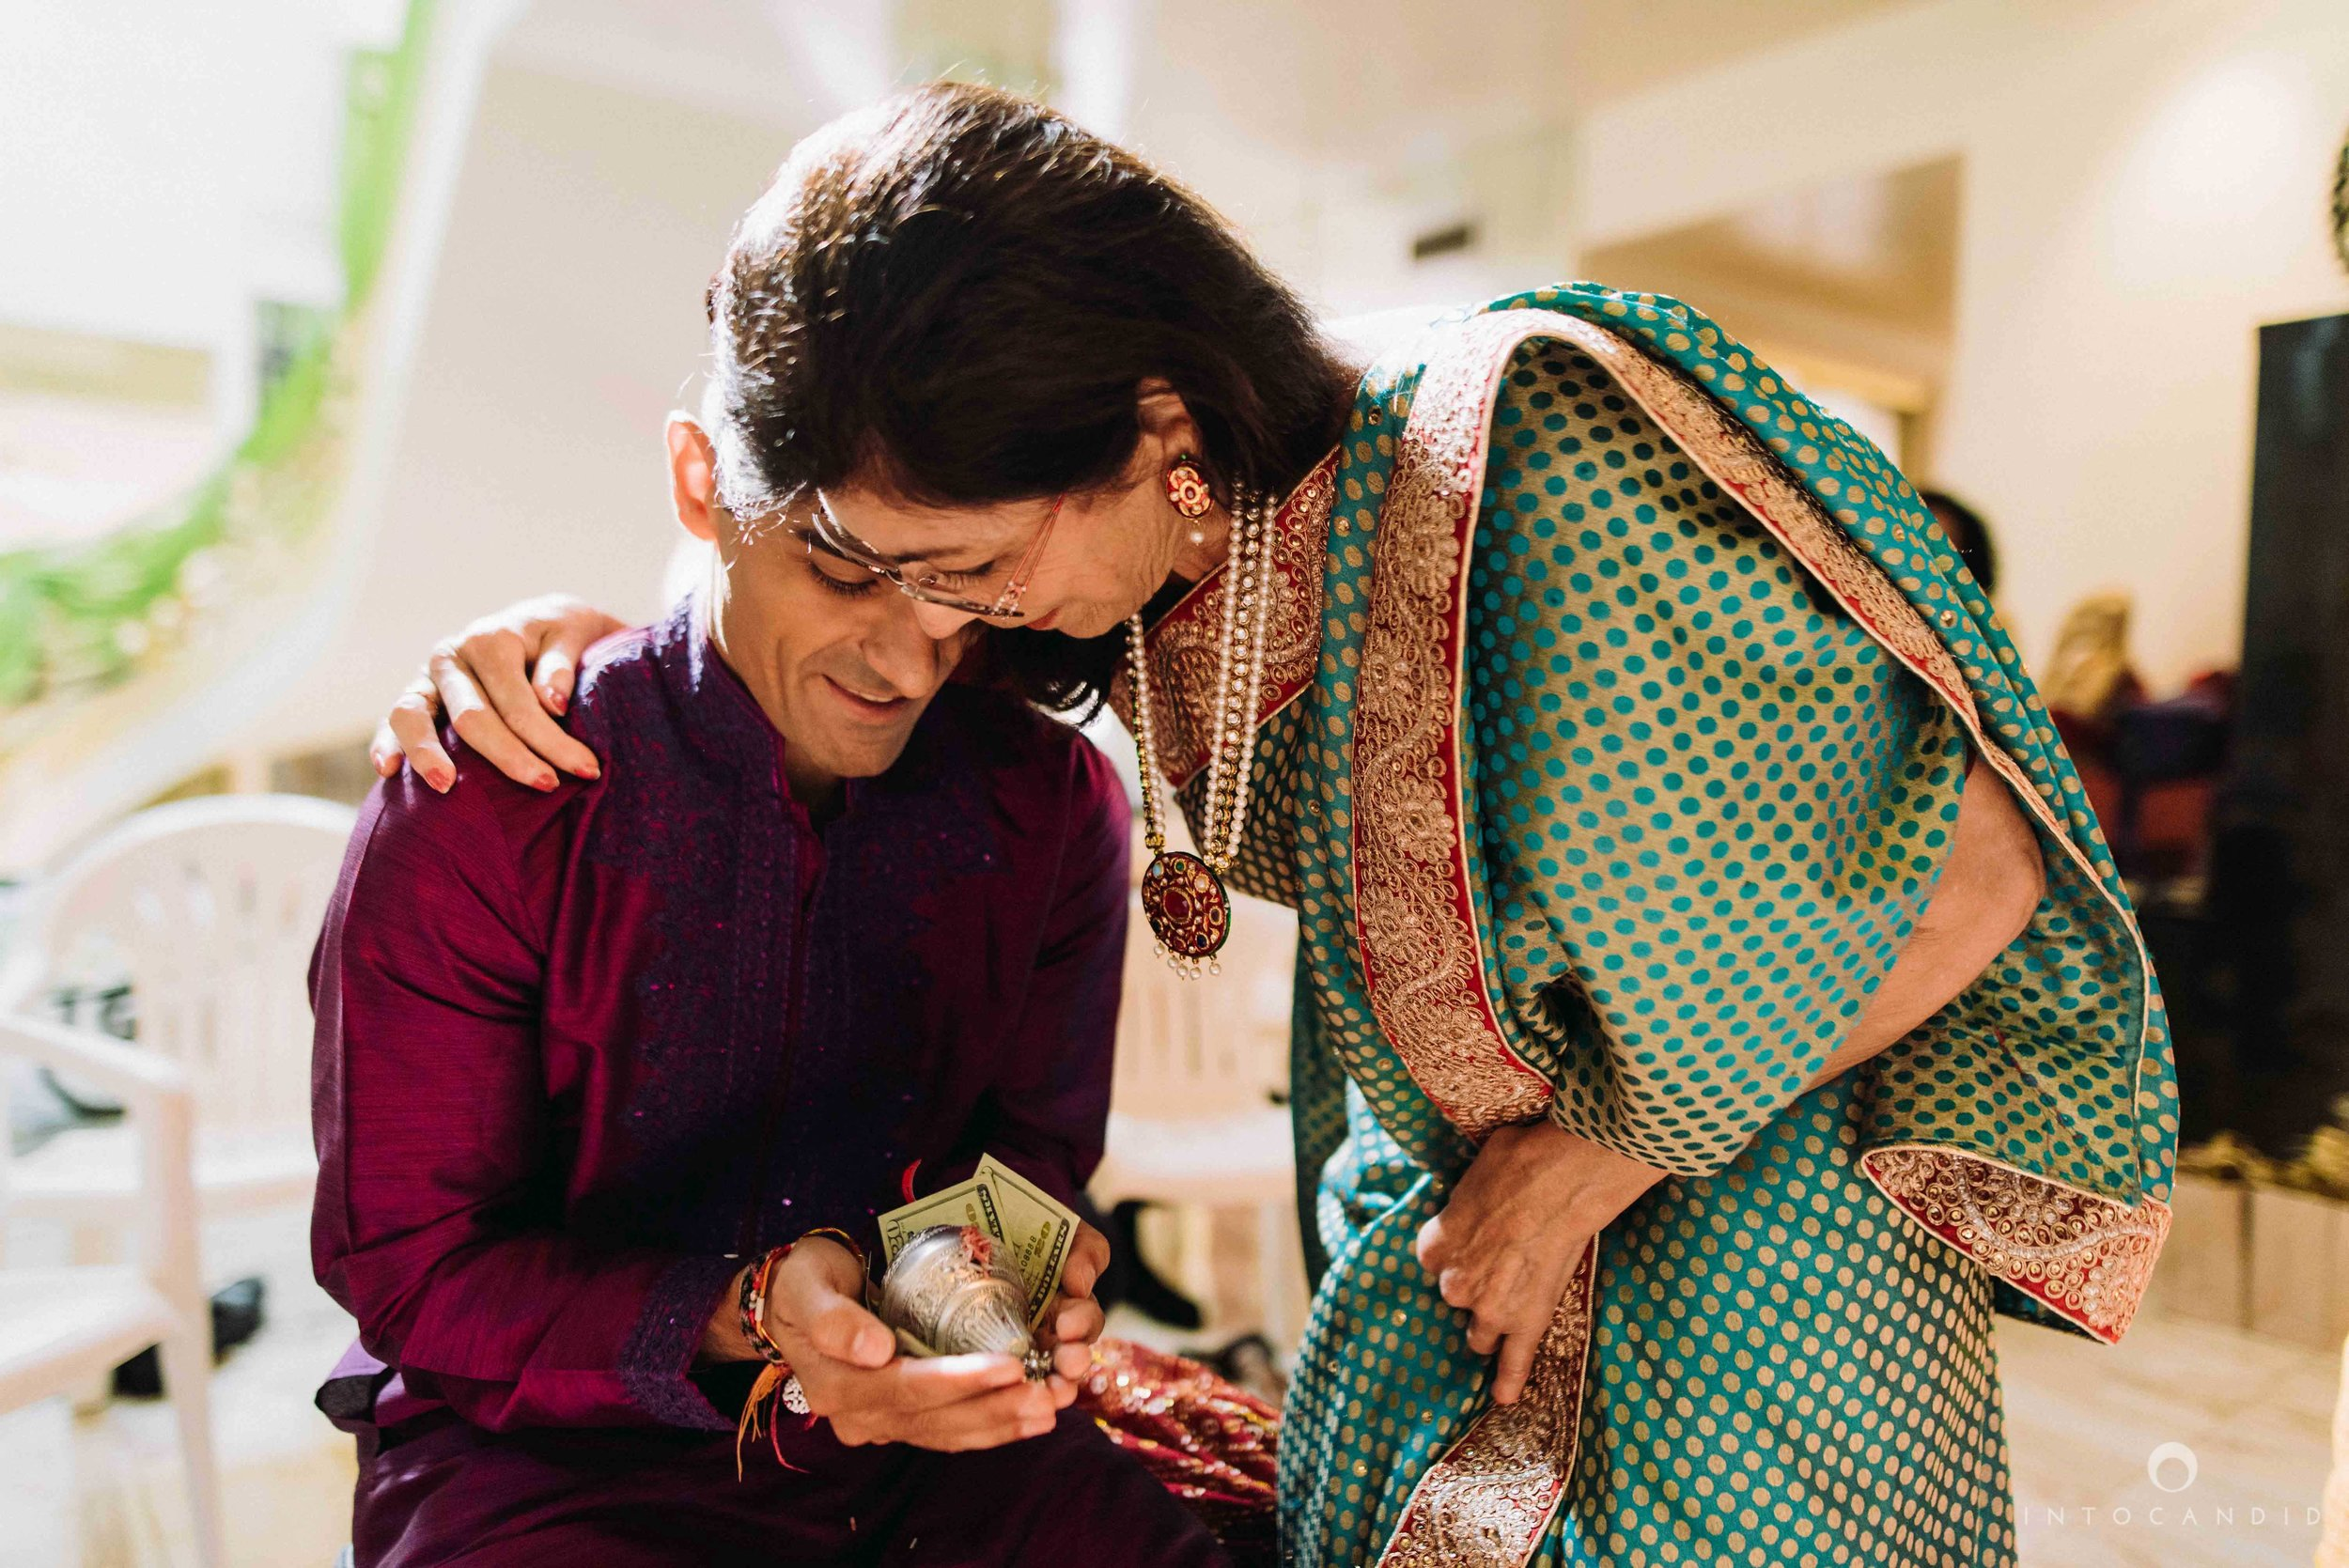 LosAngeles_Indian_Wedding_Photographer_AS_013.jpg